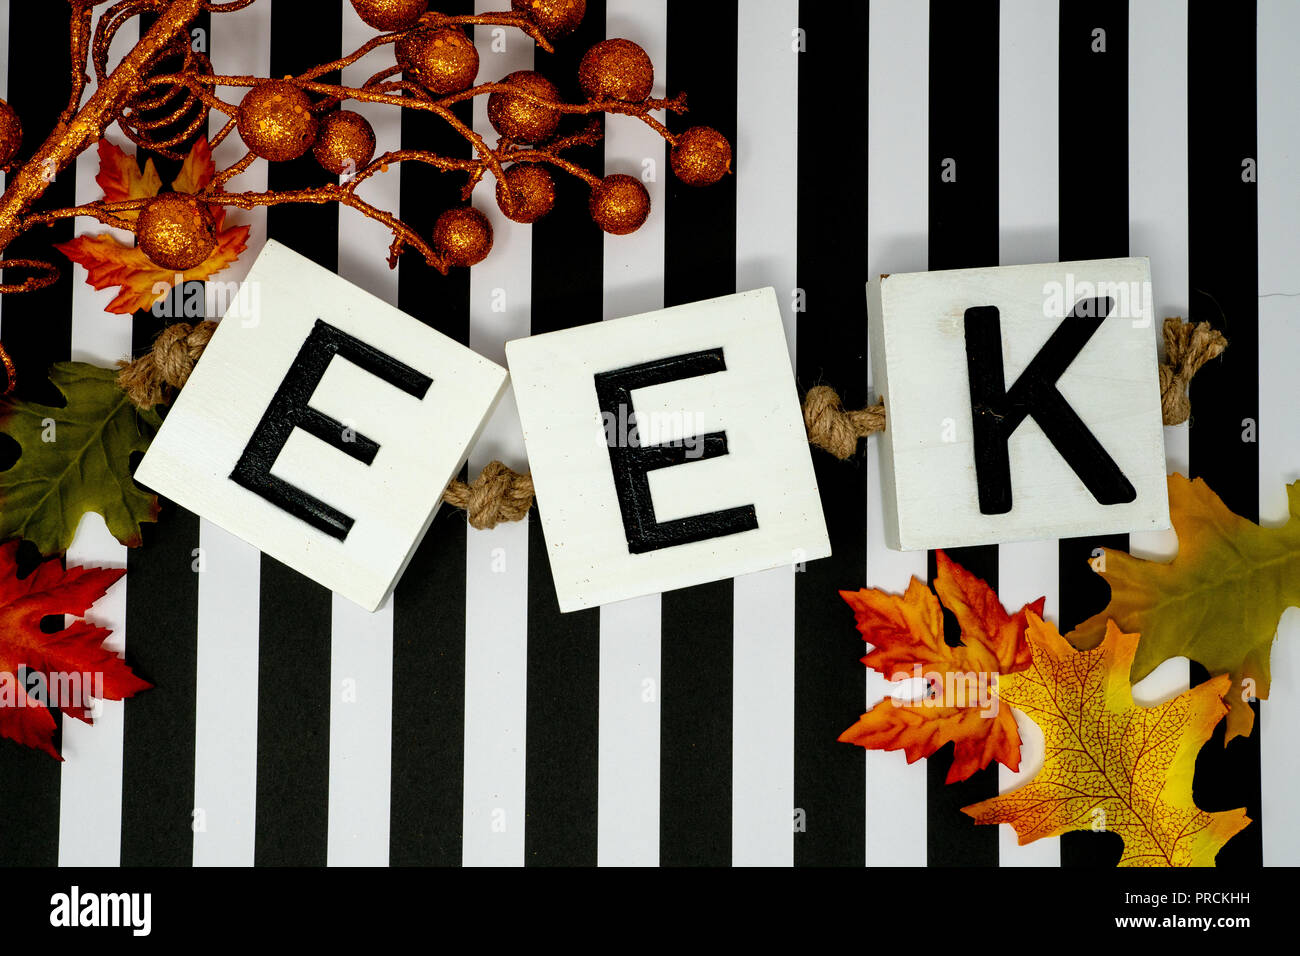 Eek Halloween phrase letters on fun black and white stripe background.  Maple leaves and orange glittery stems for festivity. Useful for Halloween pro - Stock Image